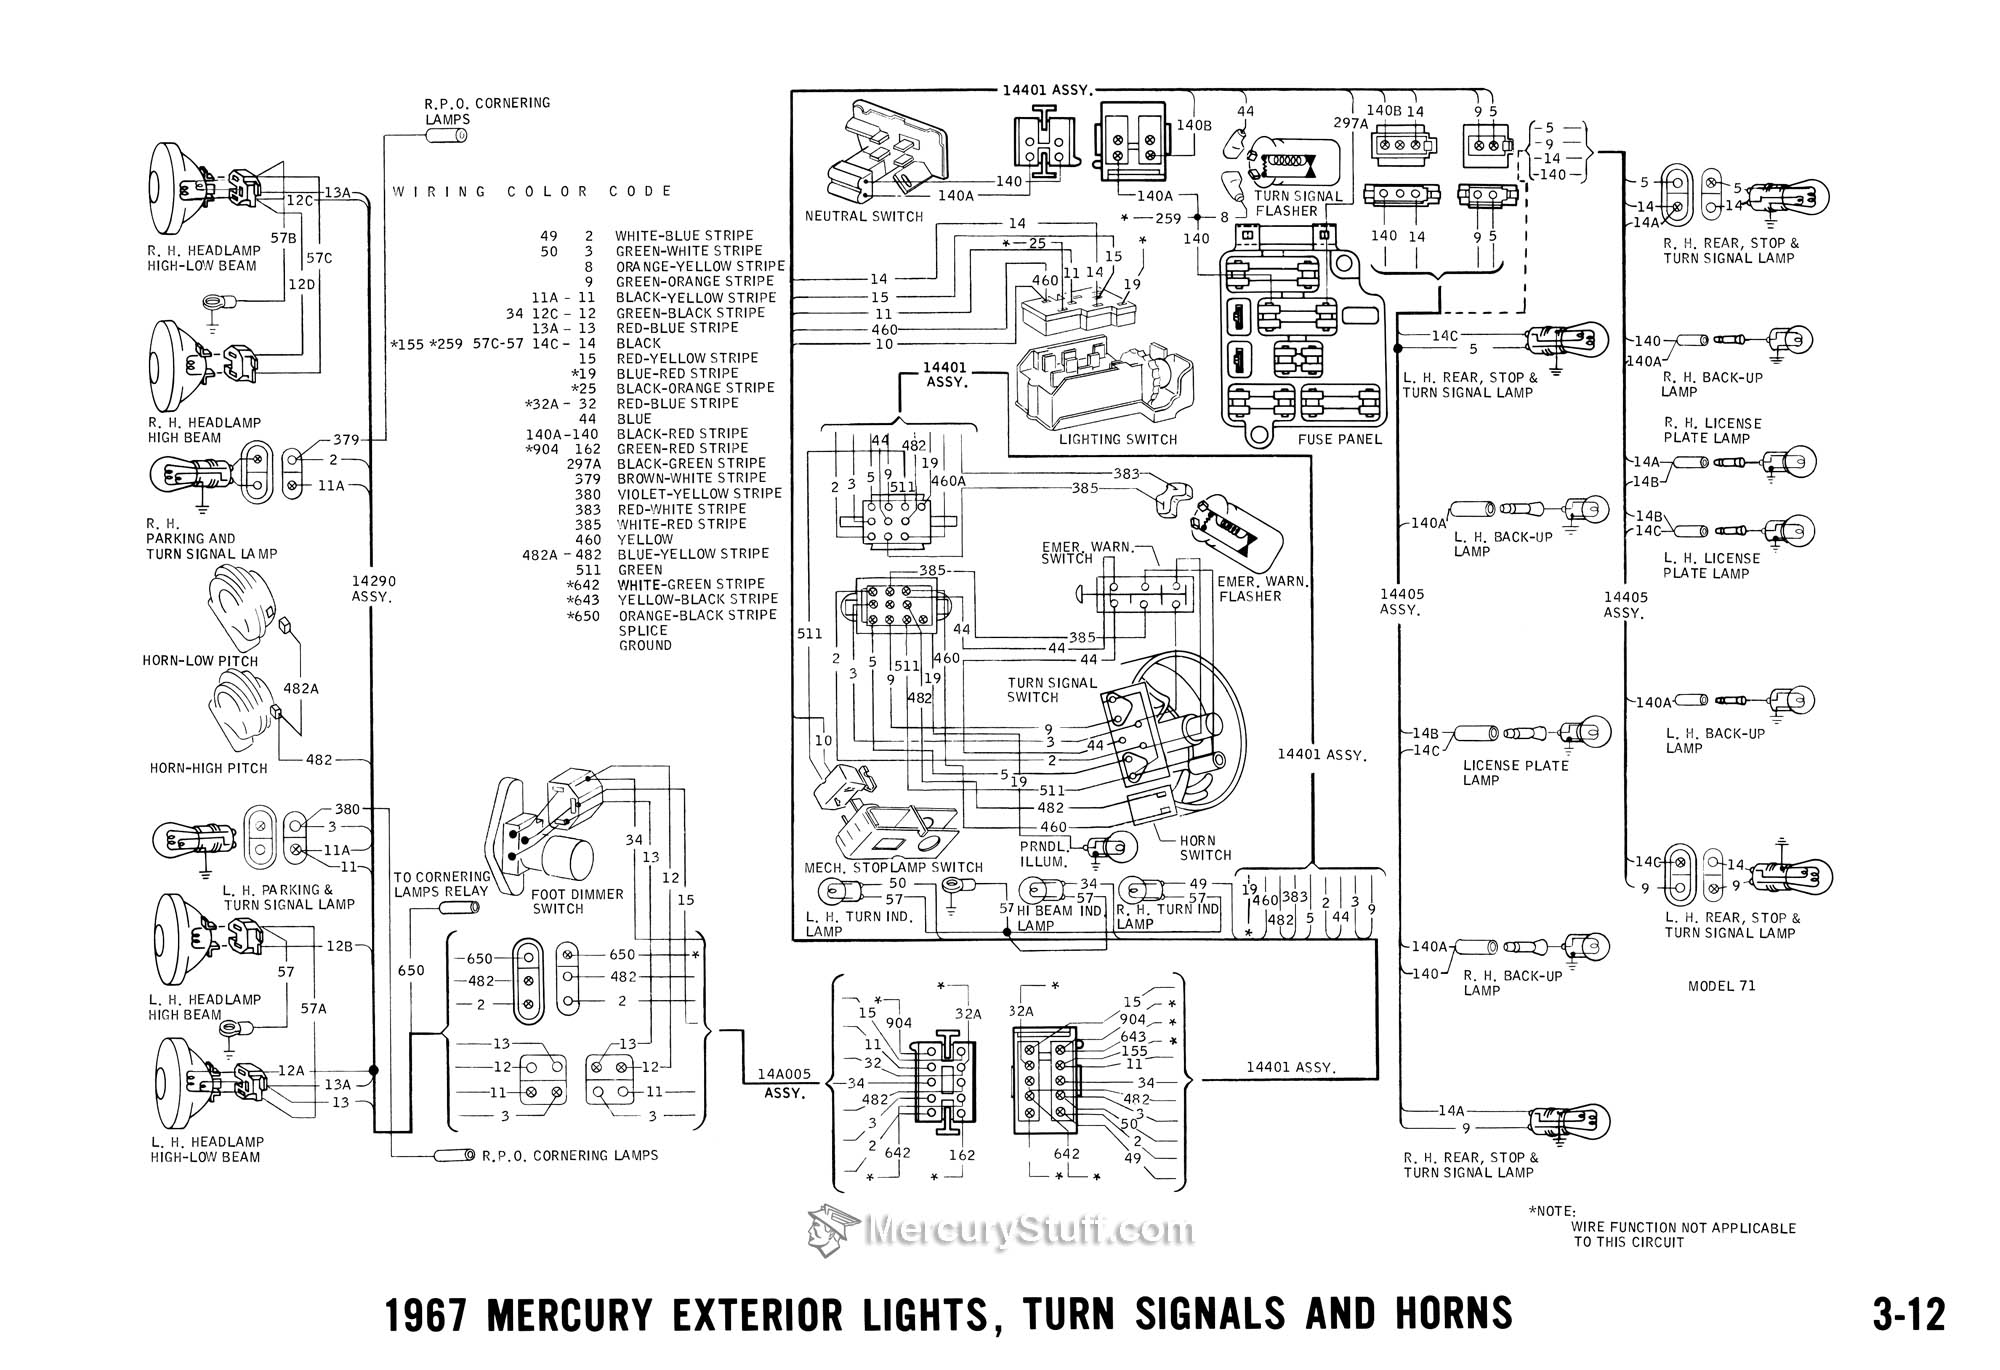 67 Cougar Engine Diagram Data Wiring 2002 Ford Taurus Mercury Harness 15 Race Car 1999 Fuse